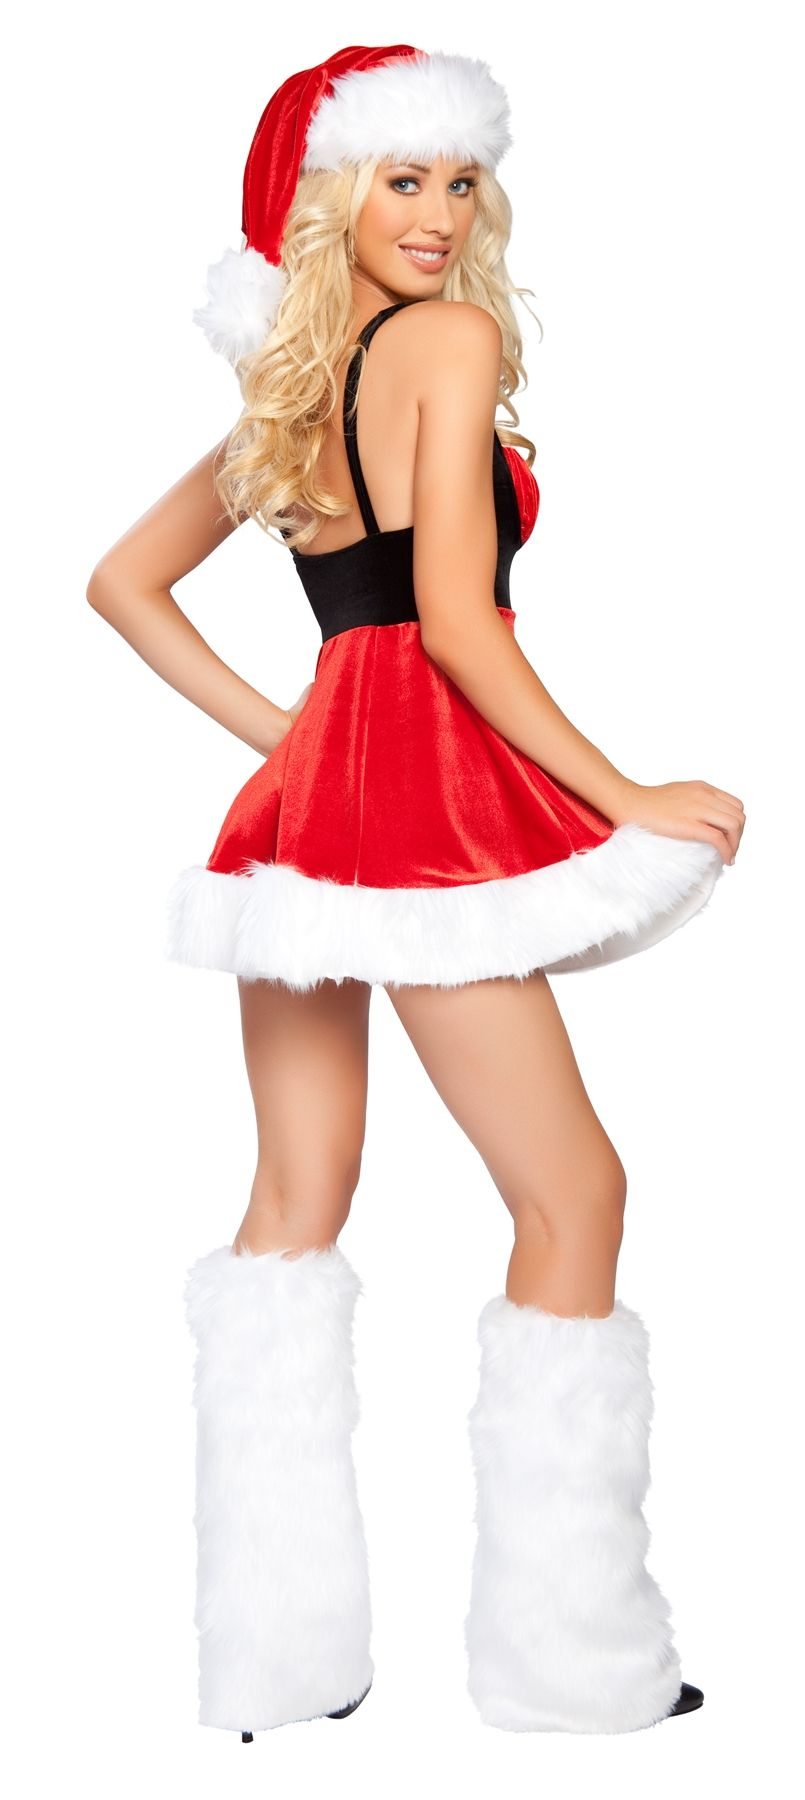 8a89426ad56 Sexy Roma Red White Christmas Mrs. Claus Hot Santa s Envy Lil  Little  Helper Holiday Costume